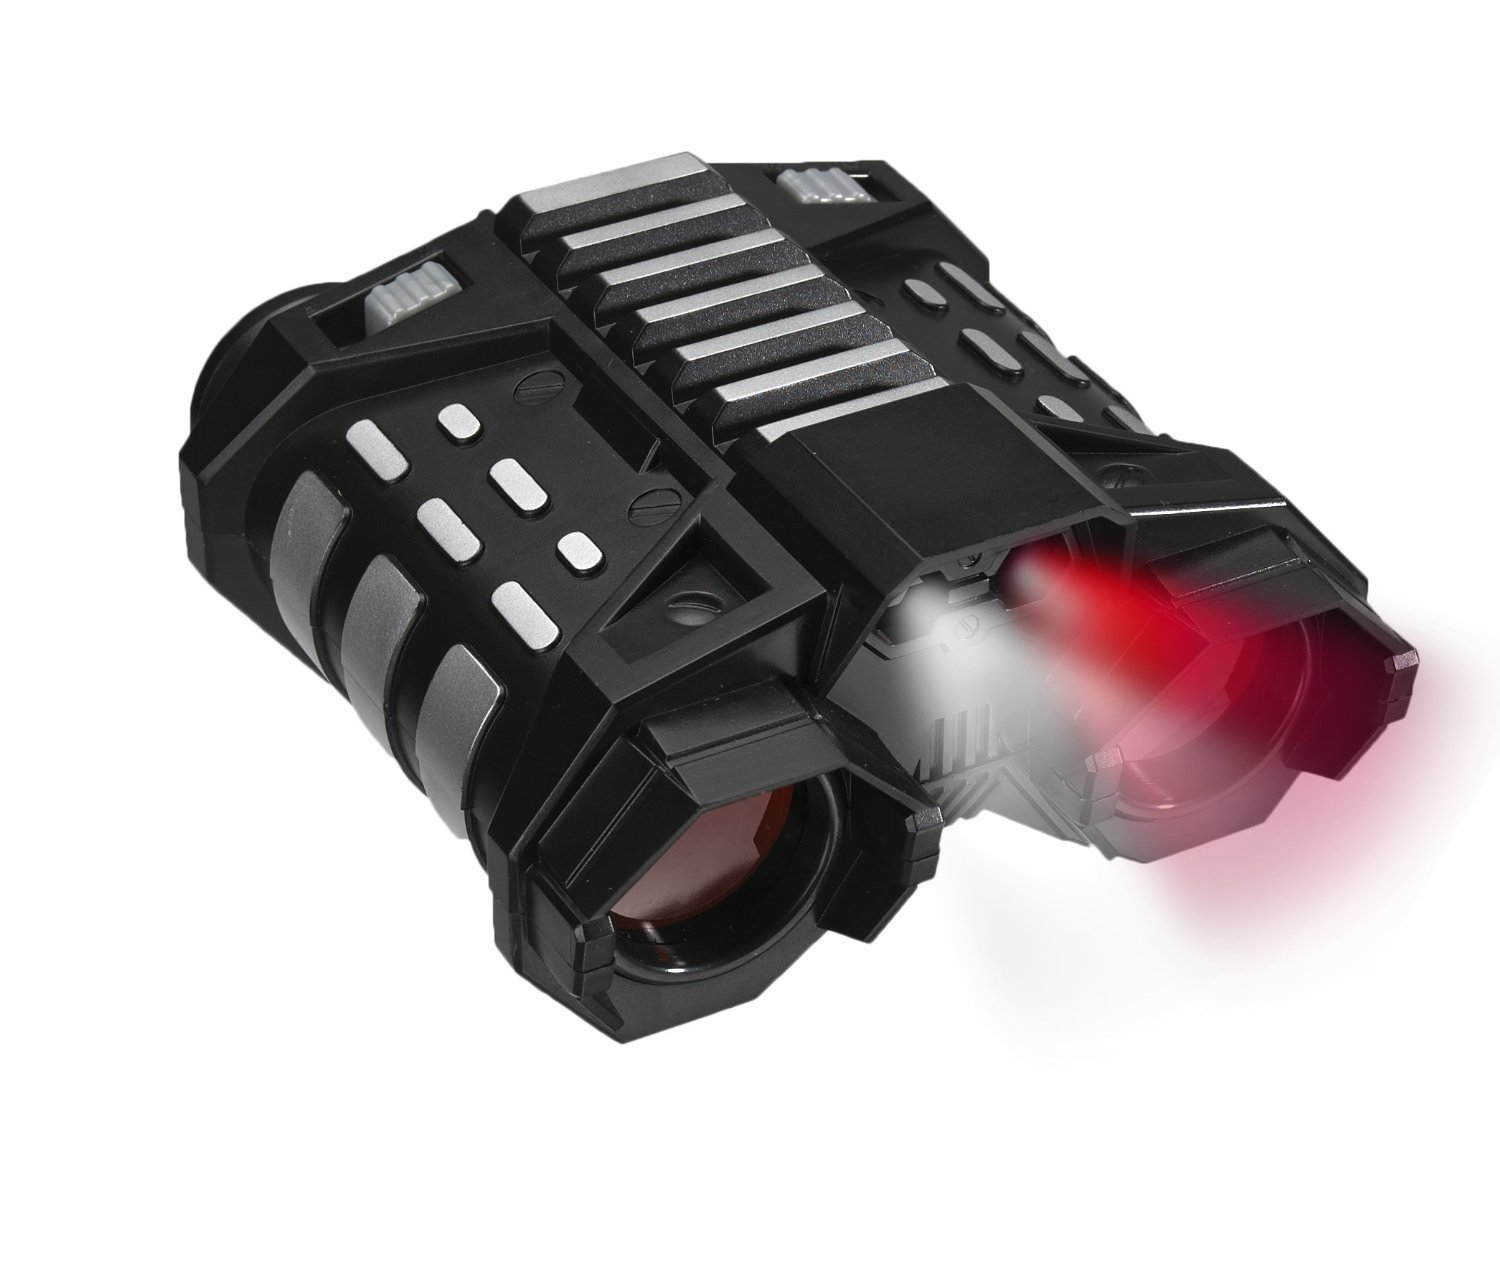 SpyX / Night Nocs - Binocular Spy Toy with White or Red Light to See in the Dark.  Perfect addition for your spy gear collection! by SpyX